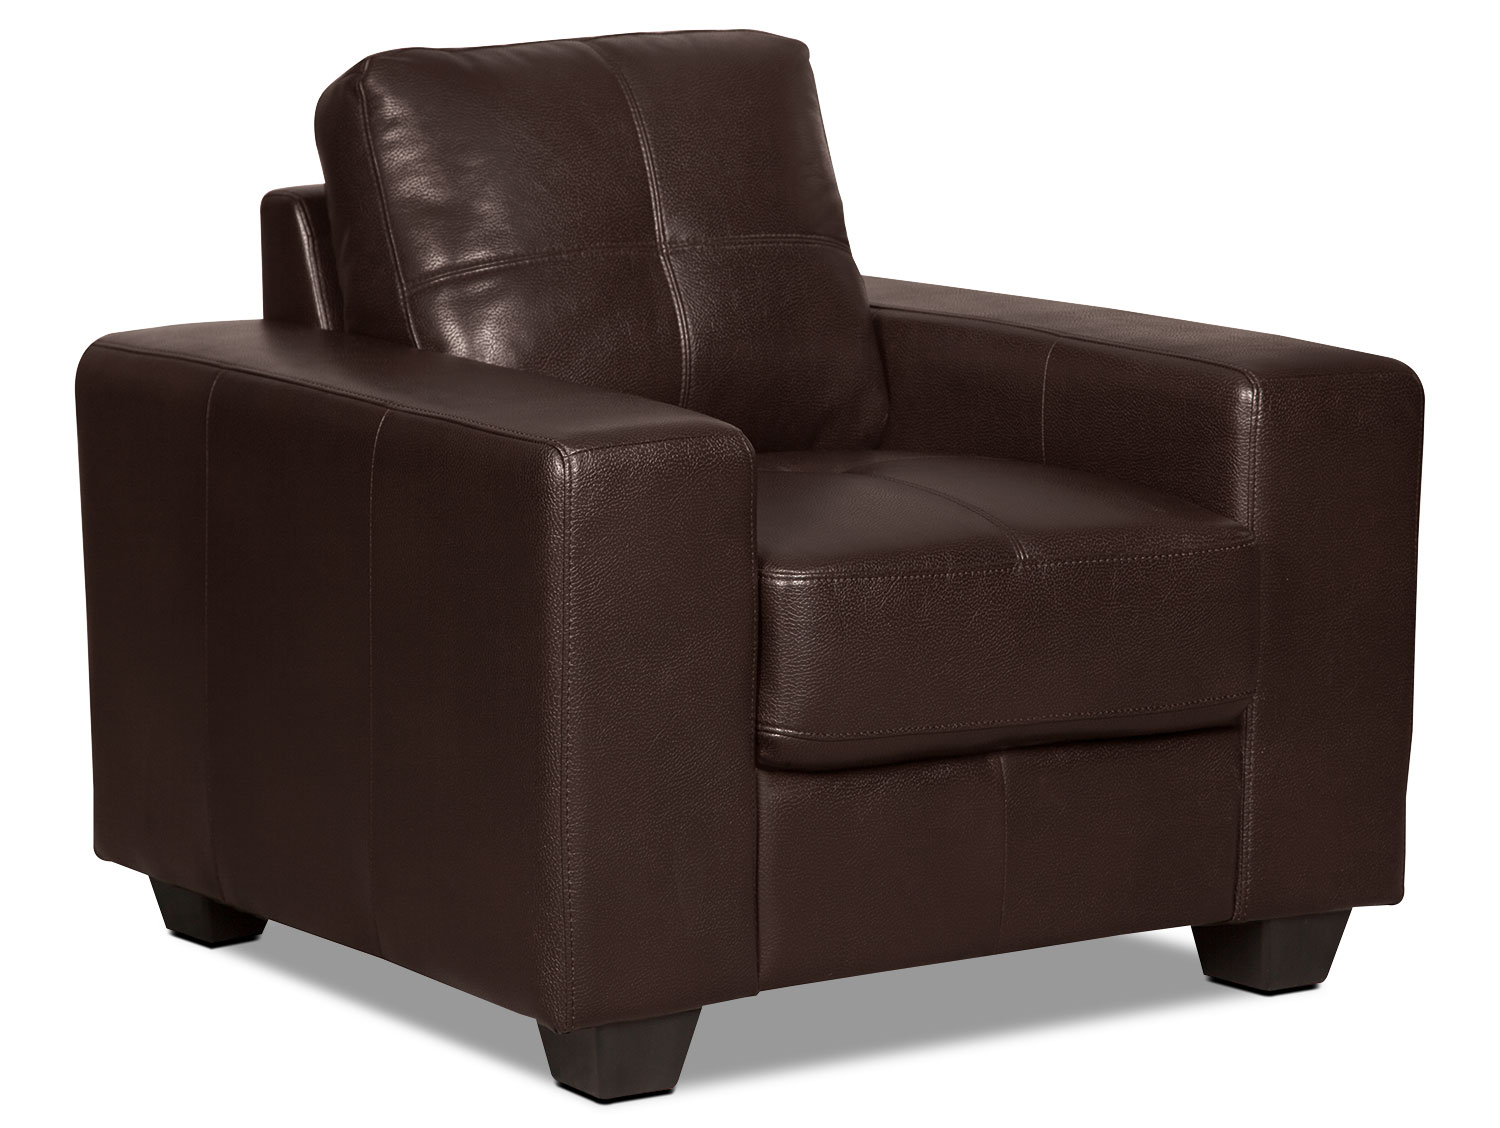 Costa Leather-Look Fabric Chair – Brown